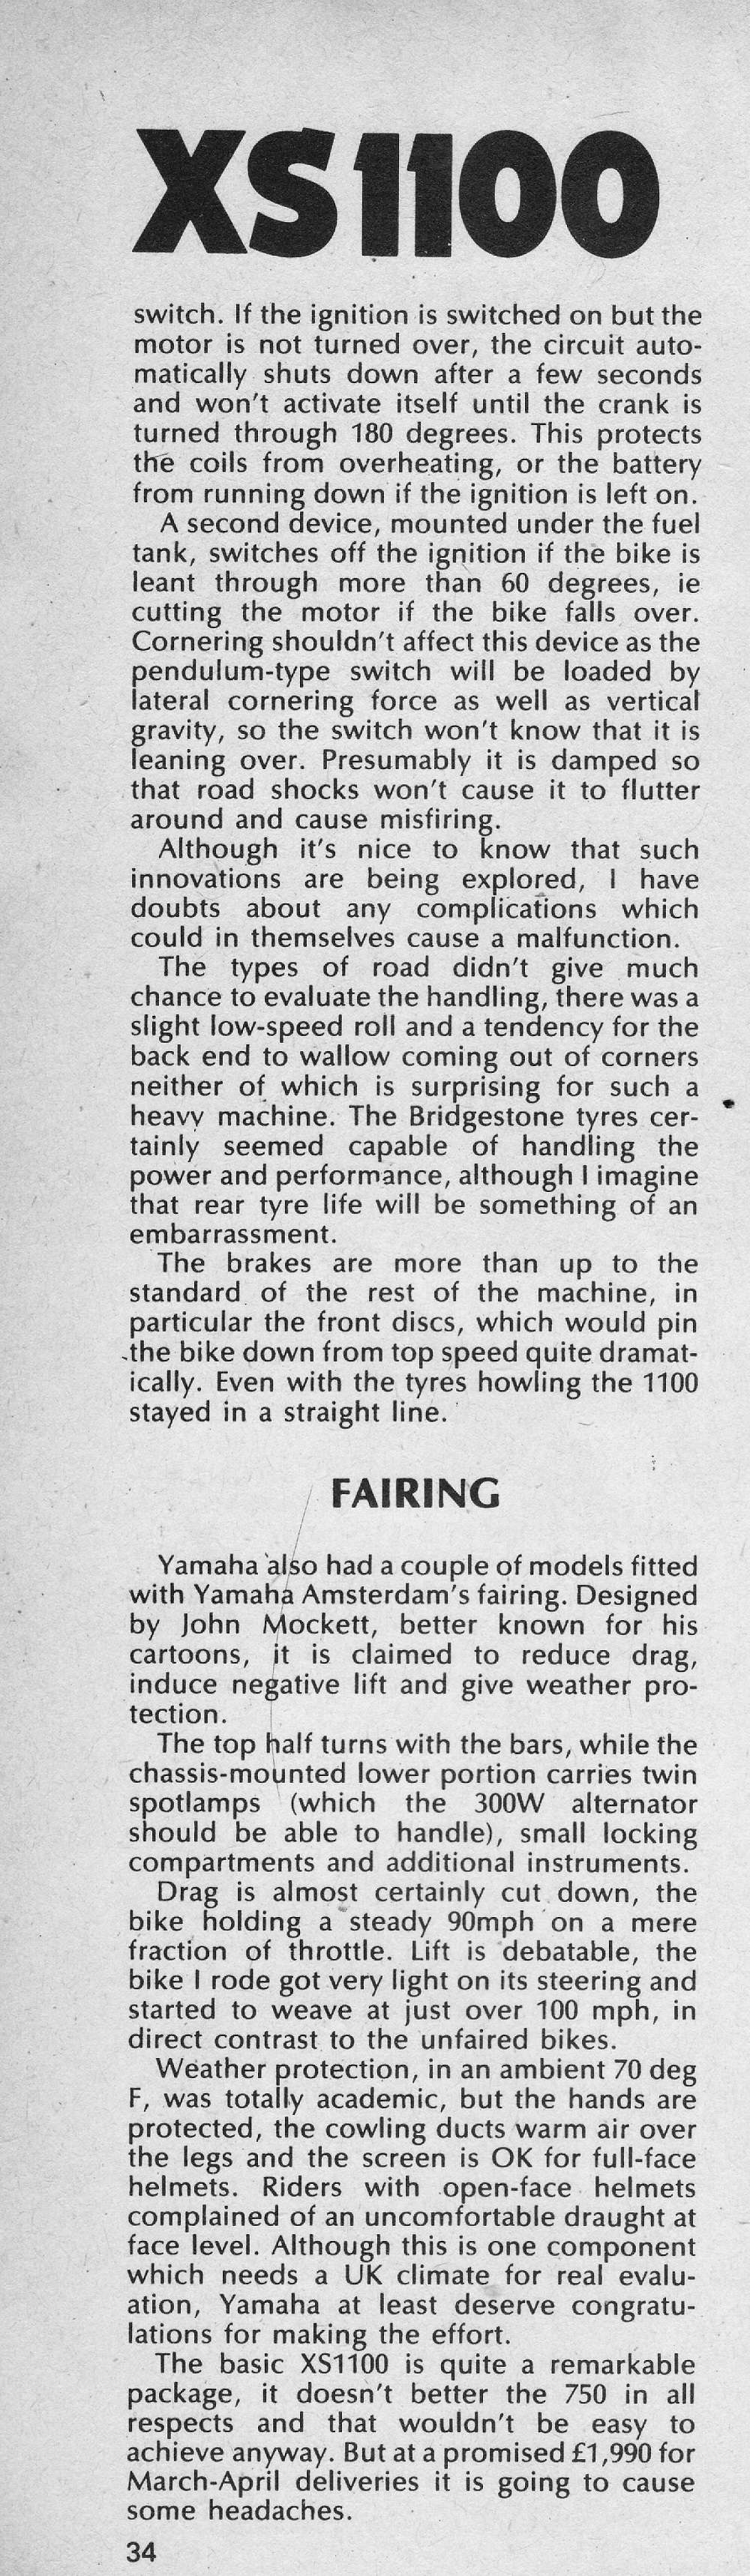 1978 Yamaha XS1100 road test.3.jpg